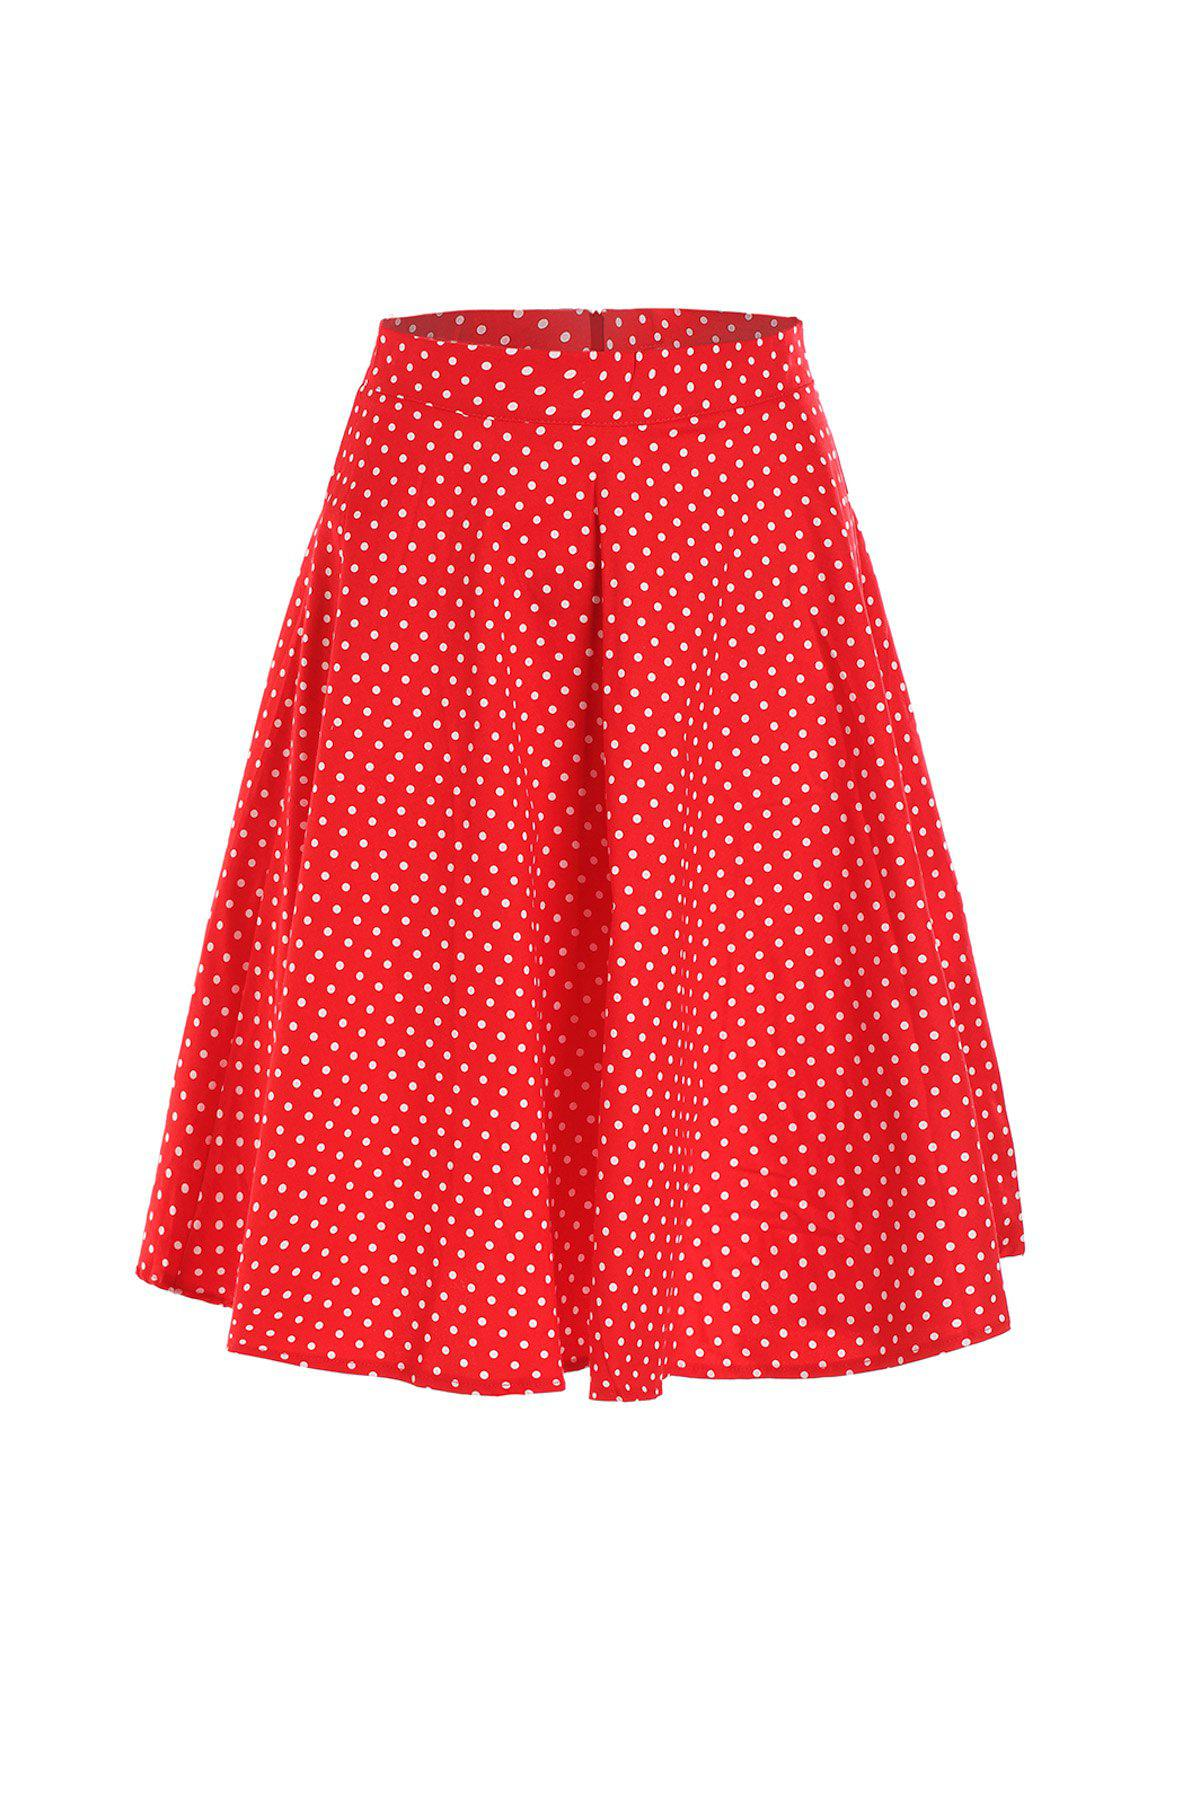 Charming Polka Dot Printed High Waist Ball Skirt For Women - RED S